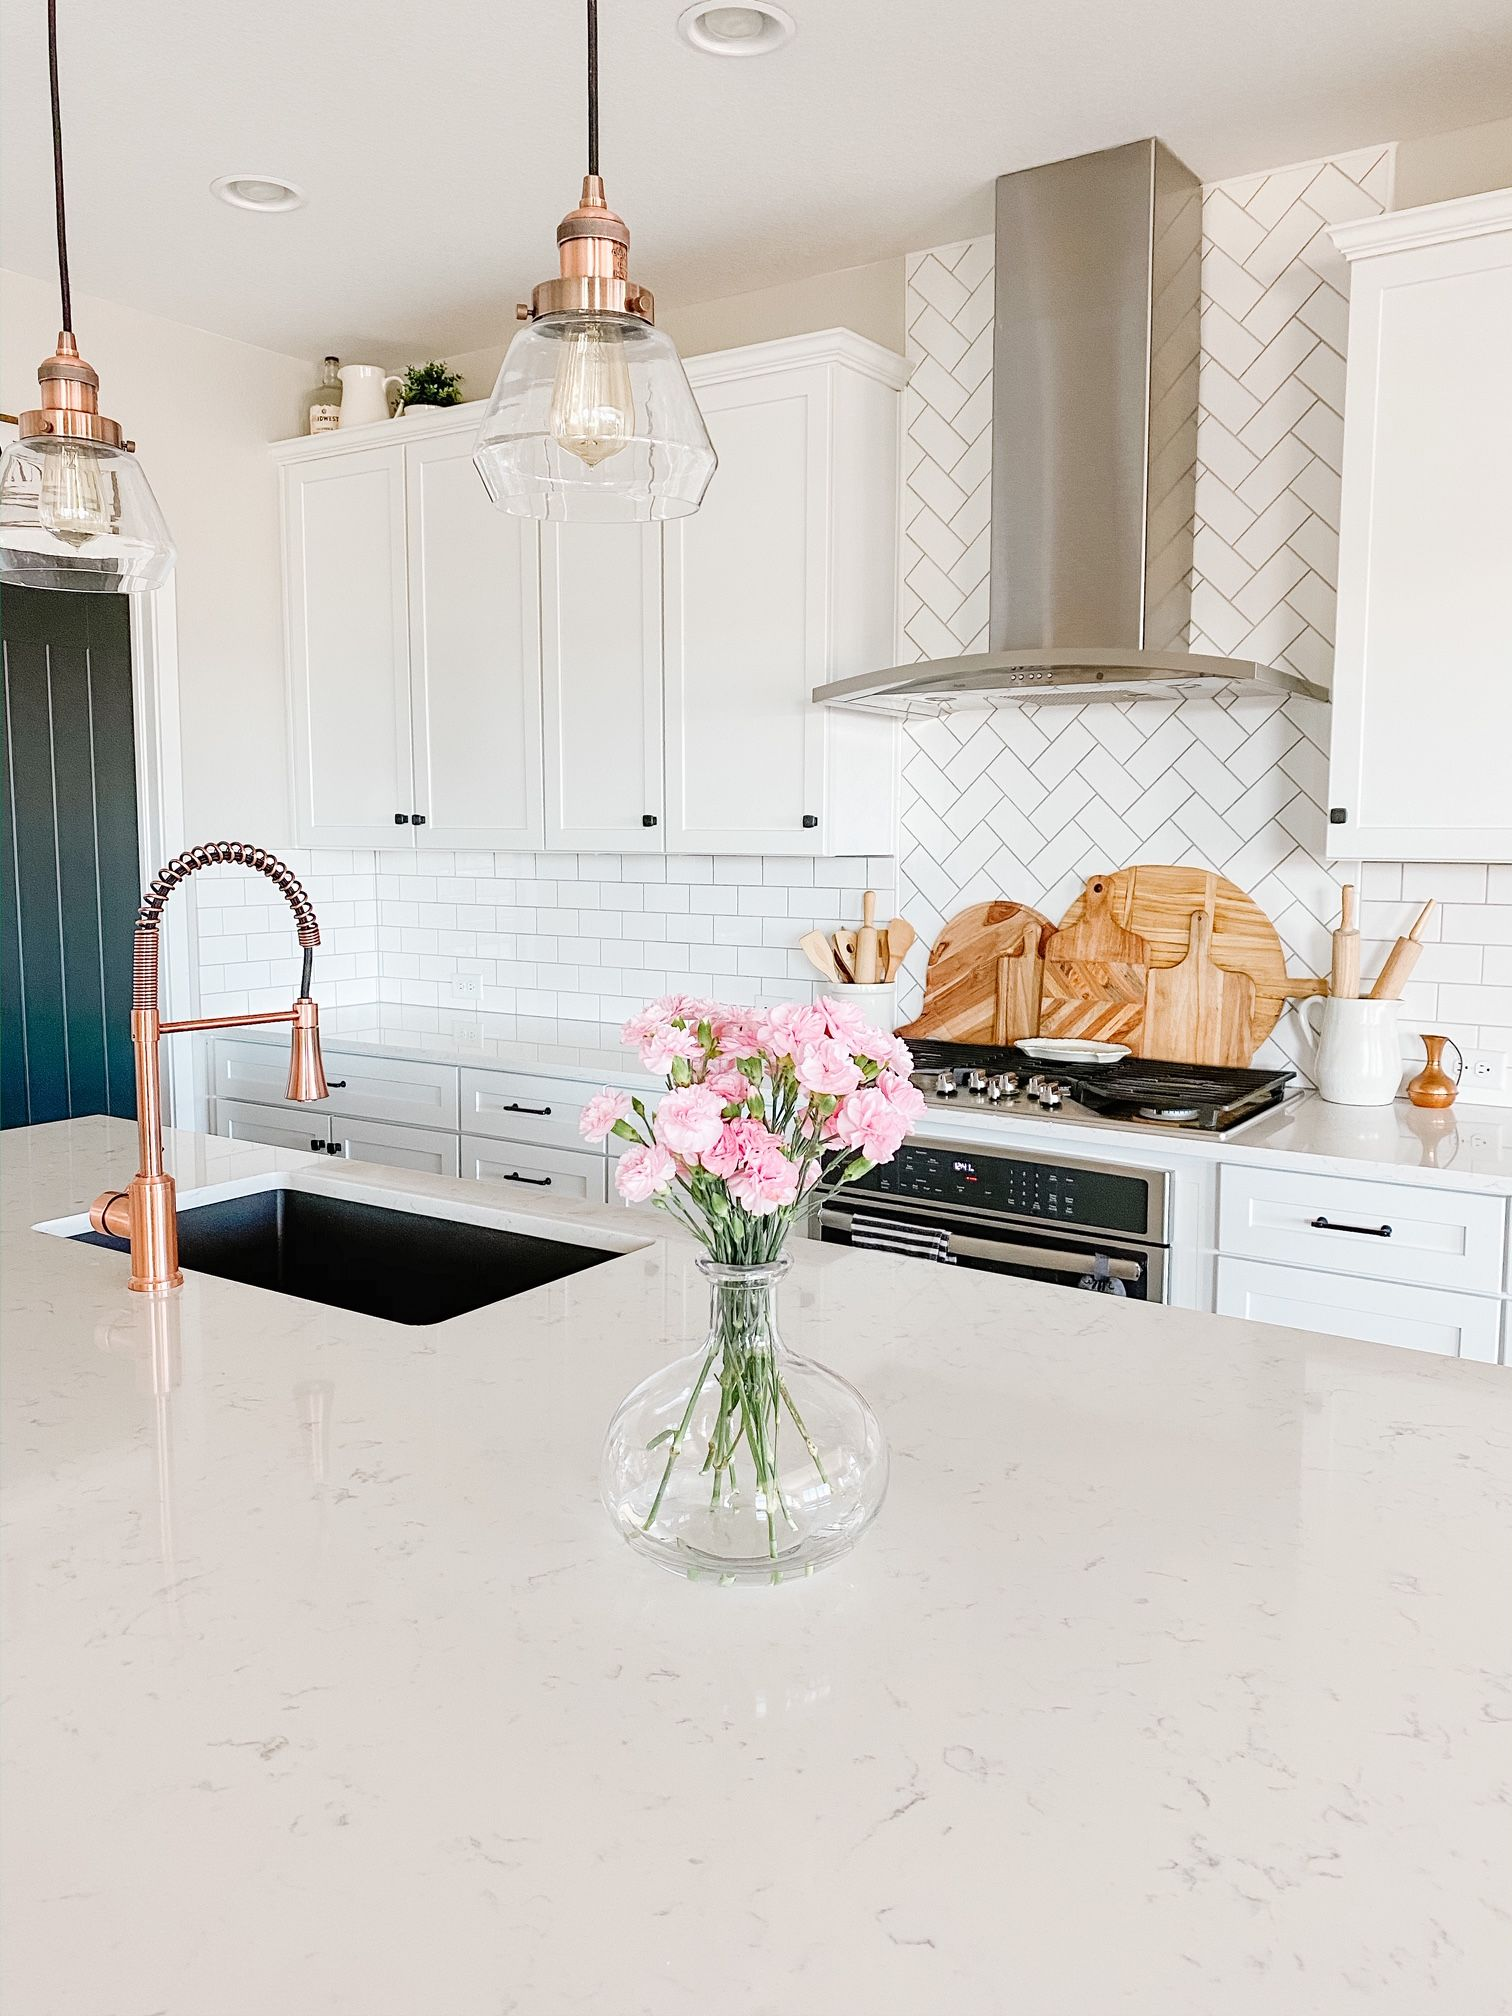 5 Ways To Use Spring Florals In Your Home! Add faux spring florals to your pitchers!   #modernfarmhouse #farmhouse #pinkdecor #springdecor #springflorals #kitcheninspo #homedecor #whitekitchen